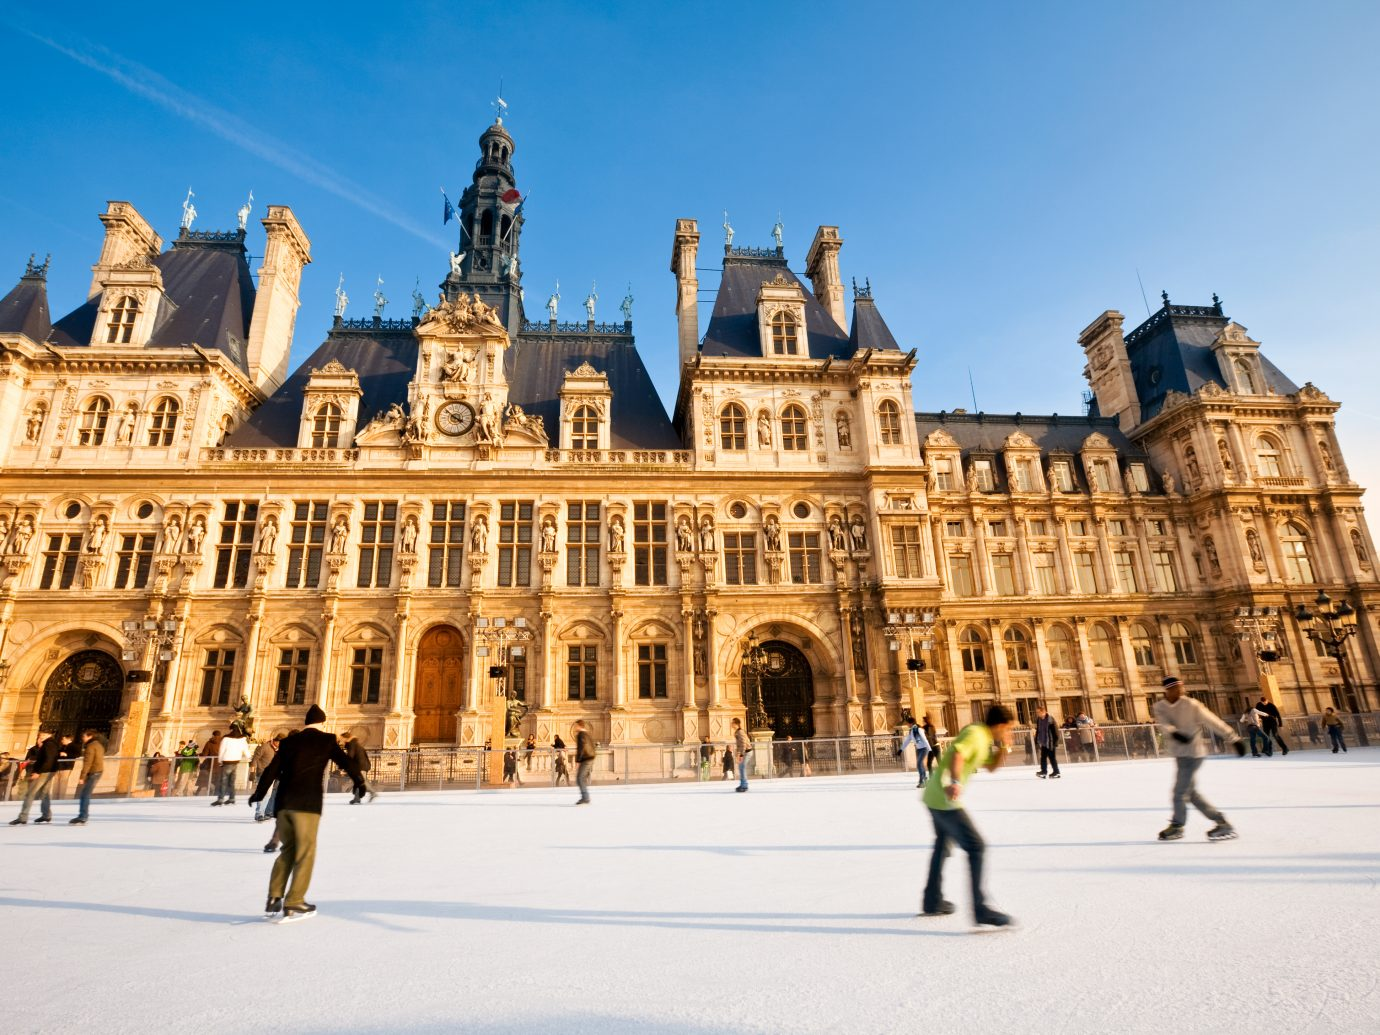 People skating at Paris Town Hall, France